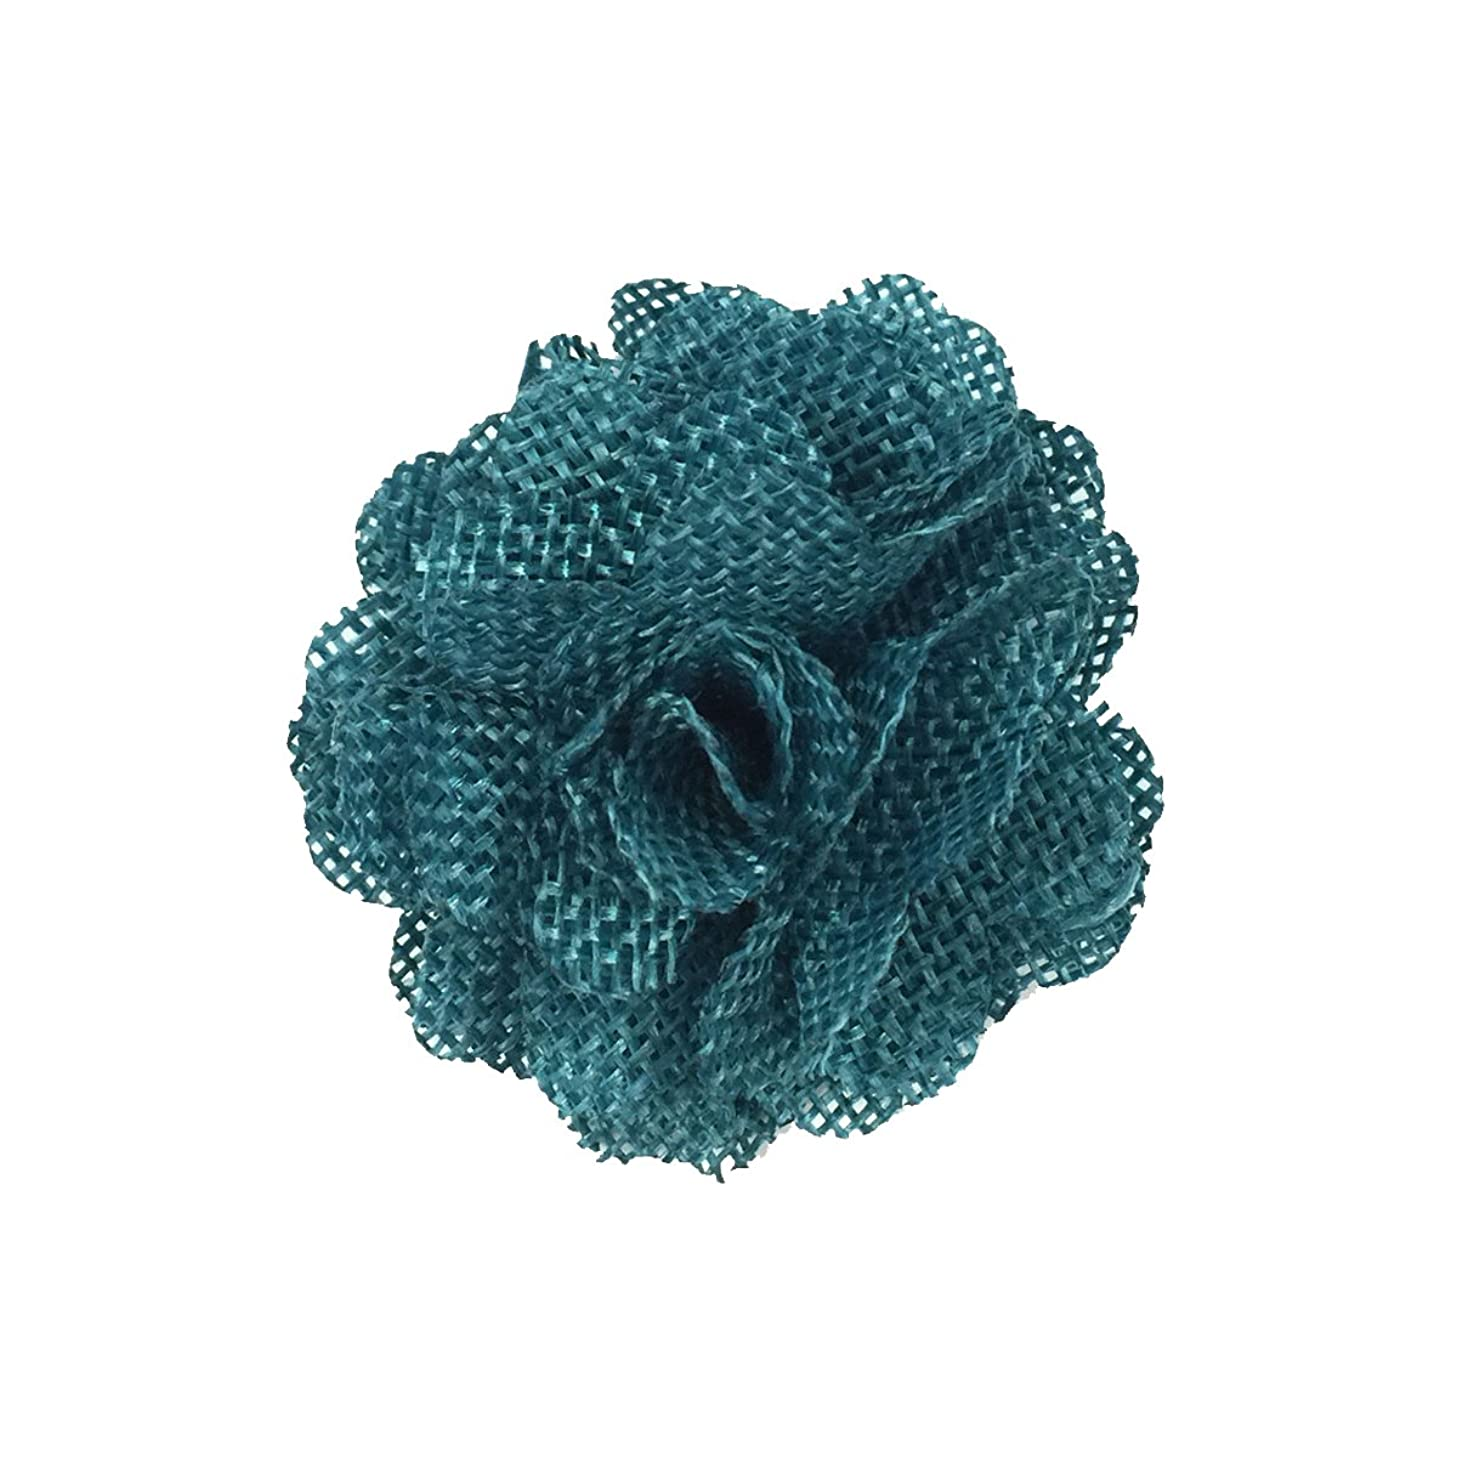 Wrapables Shabby Chic Burlap Rose Flower (Set of 20), Teal